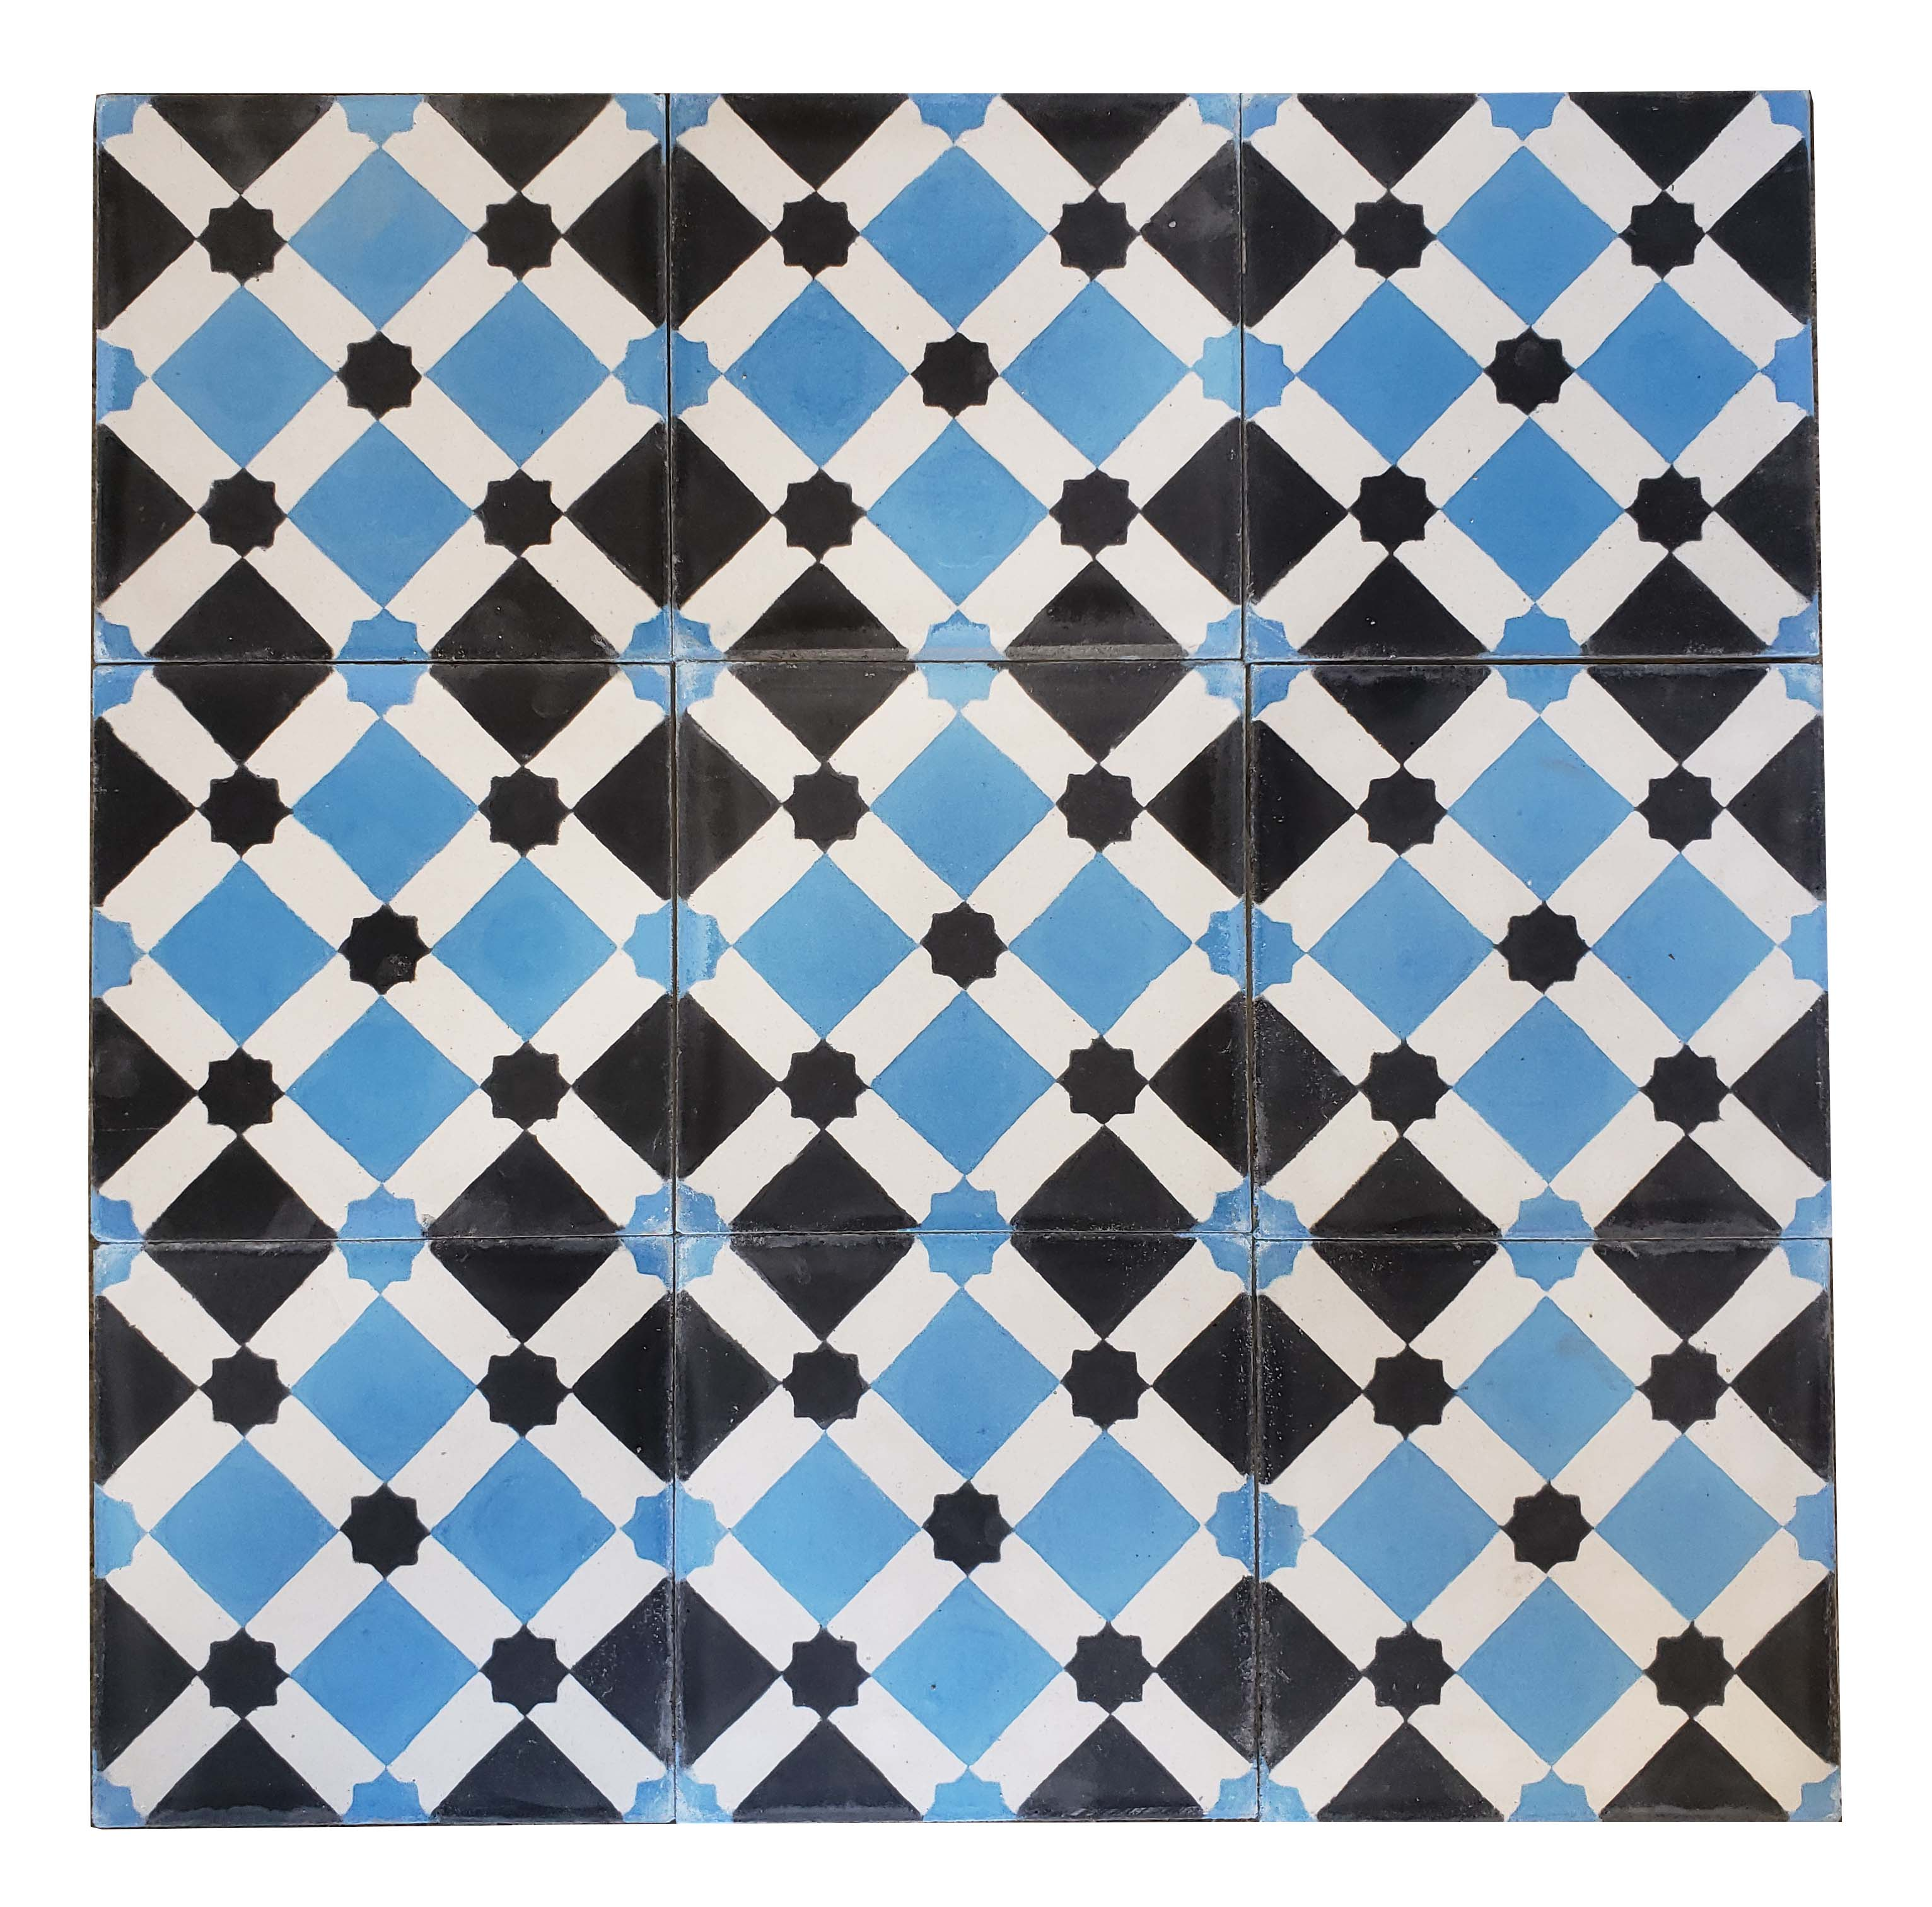 moroccan-cement-tile-houston-ct110.jpg